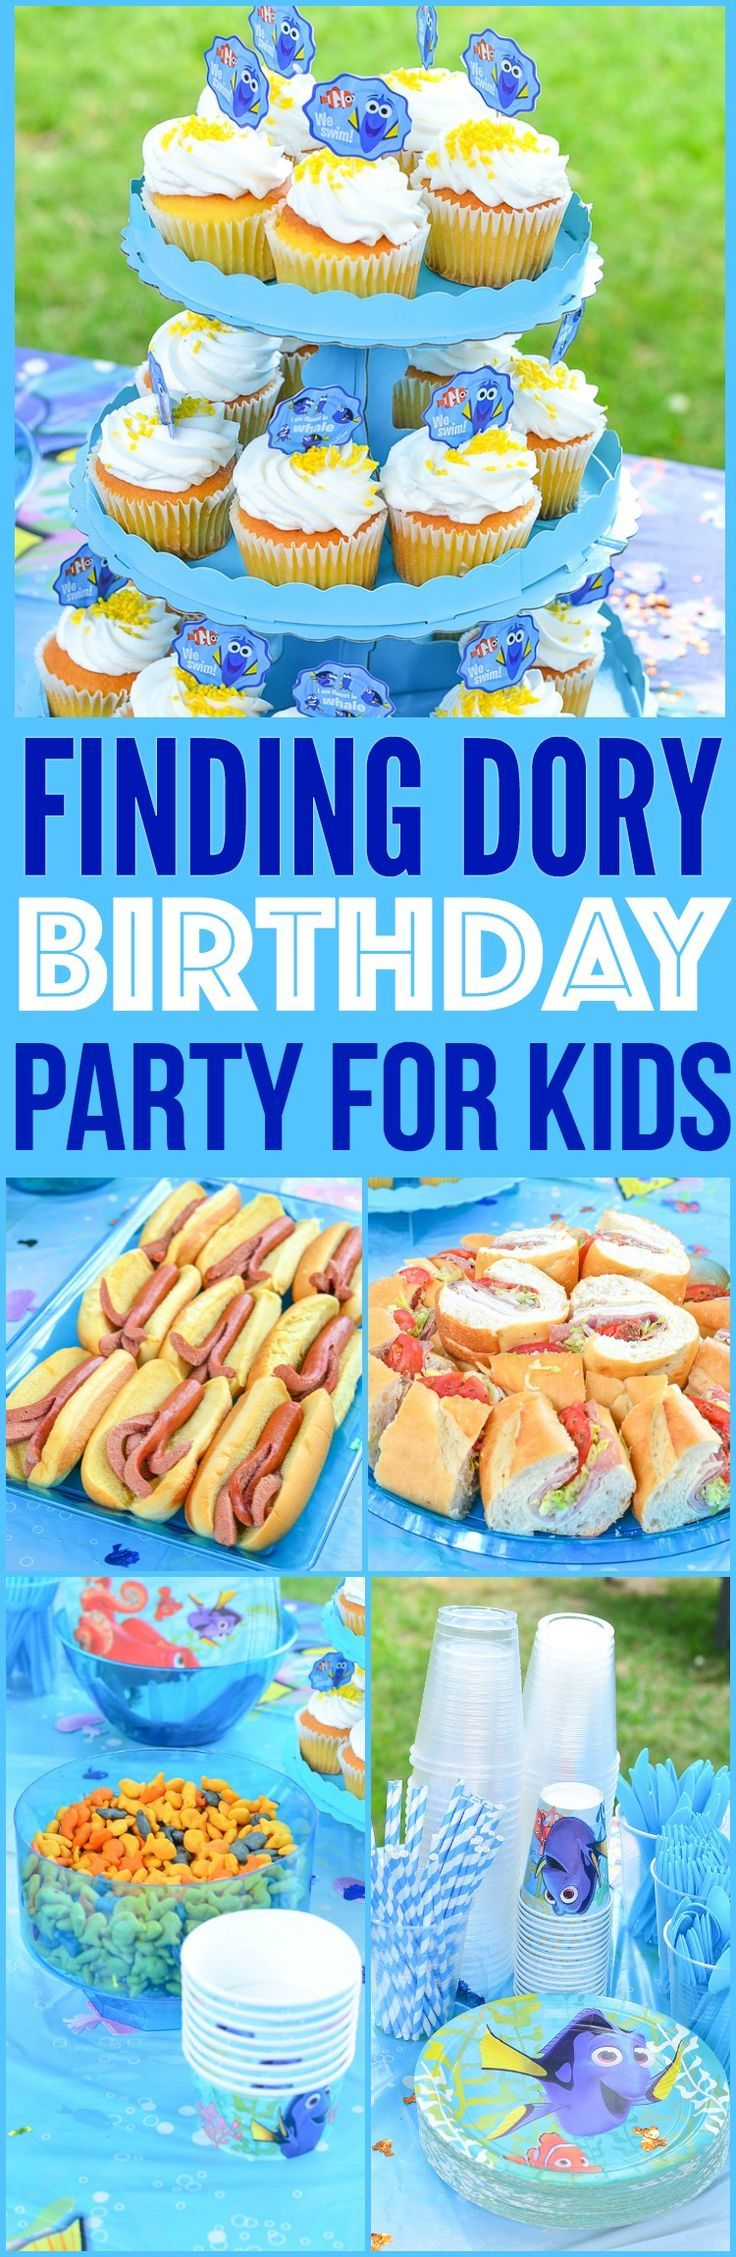 finding dory birthday party ideas finding dory cake finding dory party ideasbirthday party ideas for kids party food party planning  via @CourtneysSweets